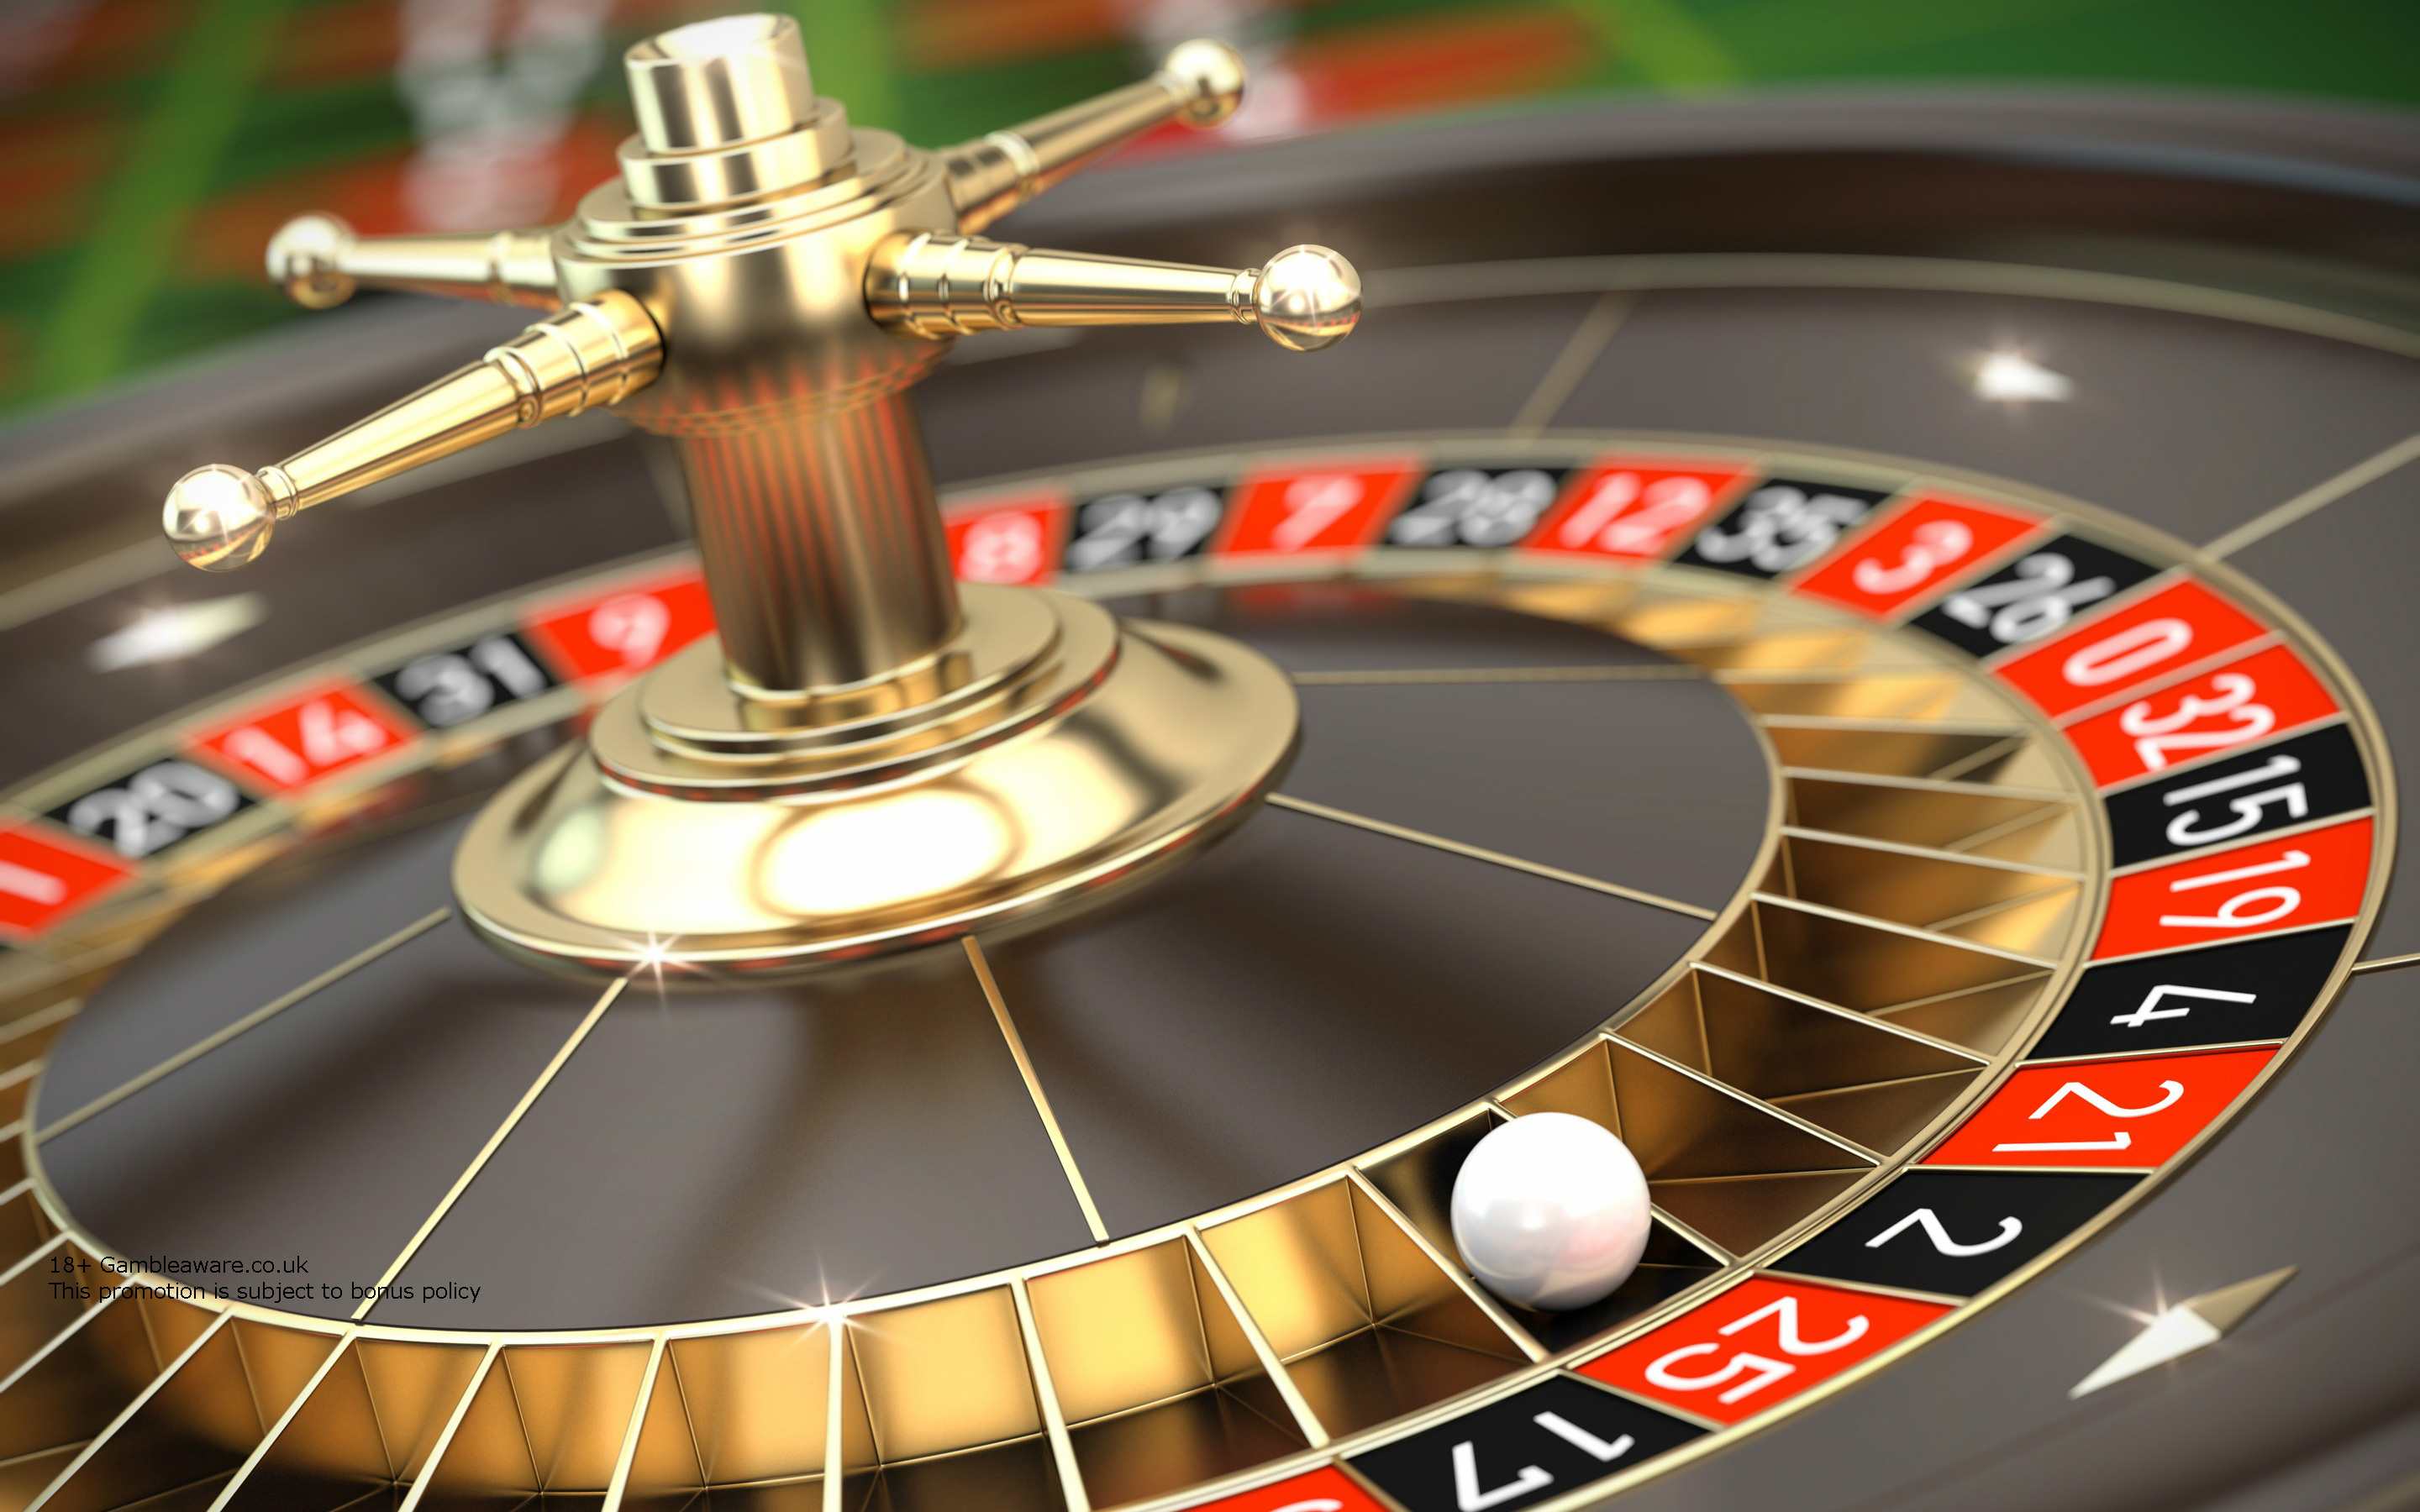 Roulette quick tips